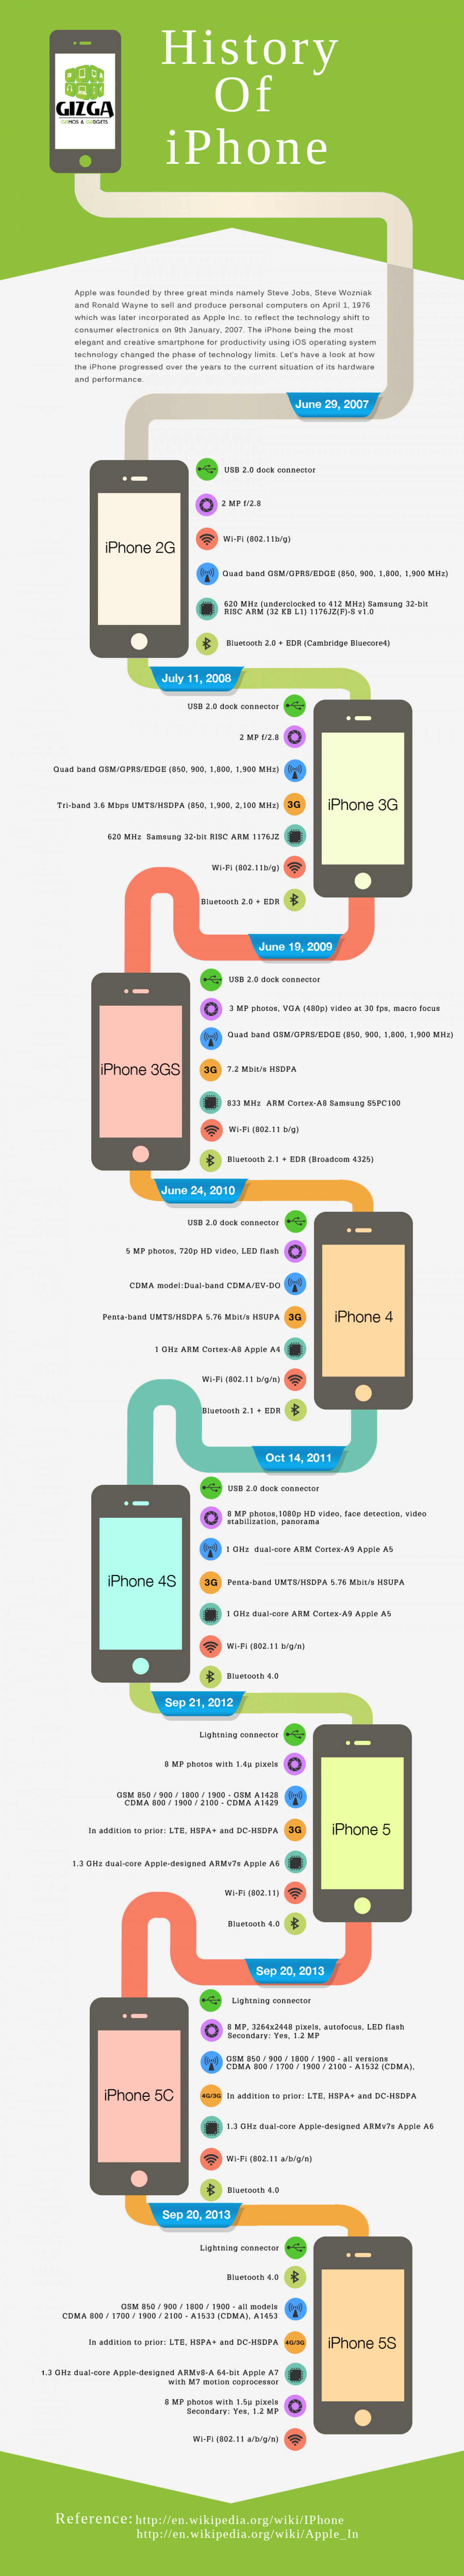 History Of Apple iPhone | Visual.ly